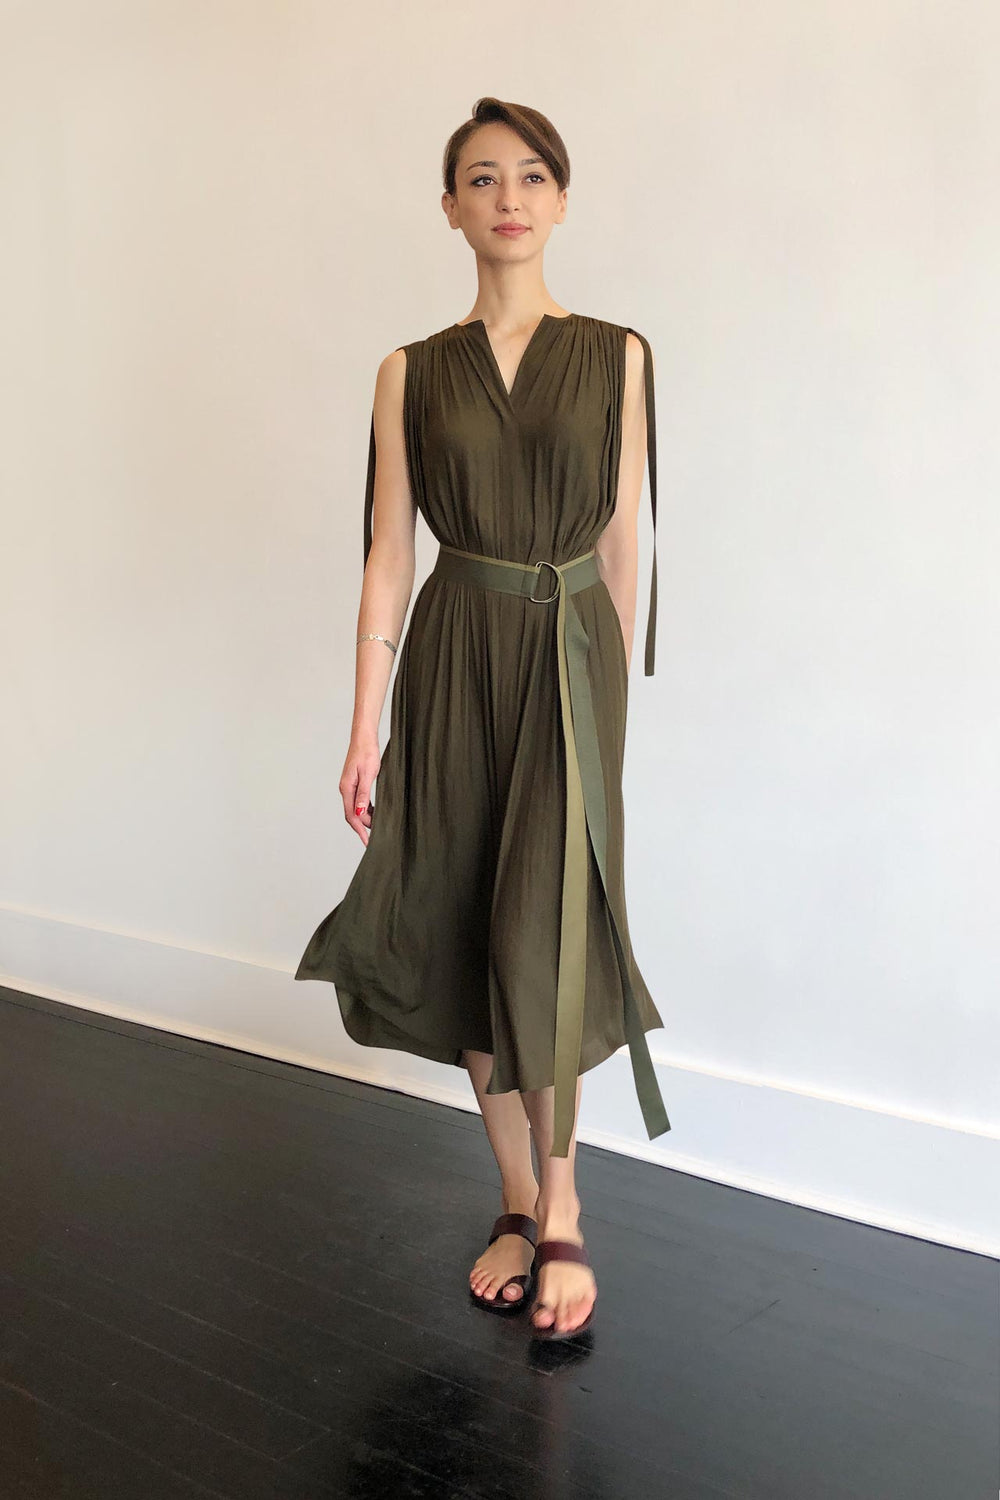 Fashion Designer CARL KAPP collection | Patatran Onesize Fits All cocktail dress Khaki | Sydney Australia